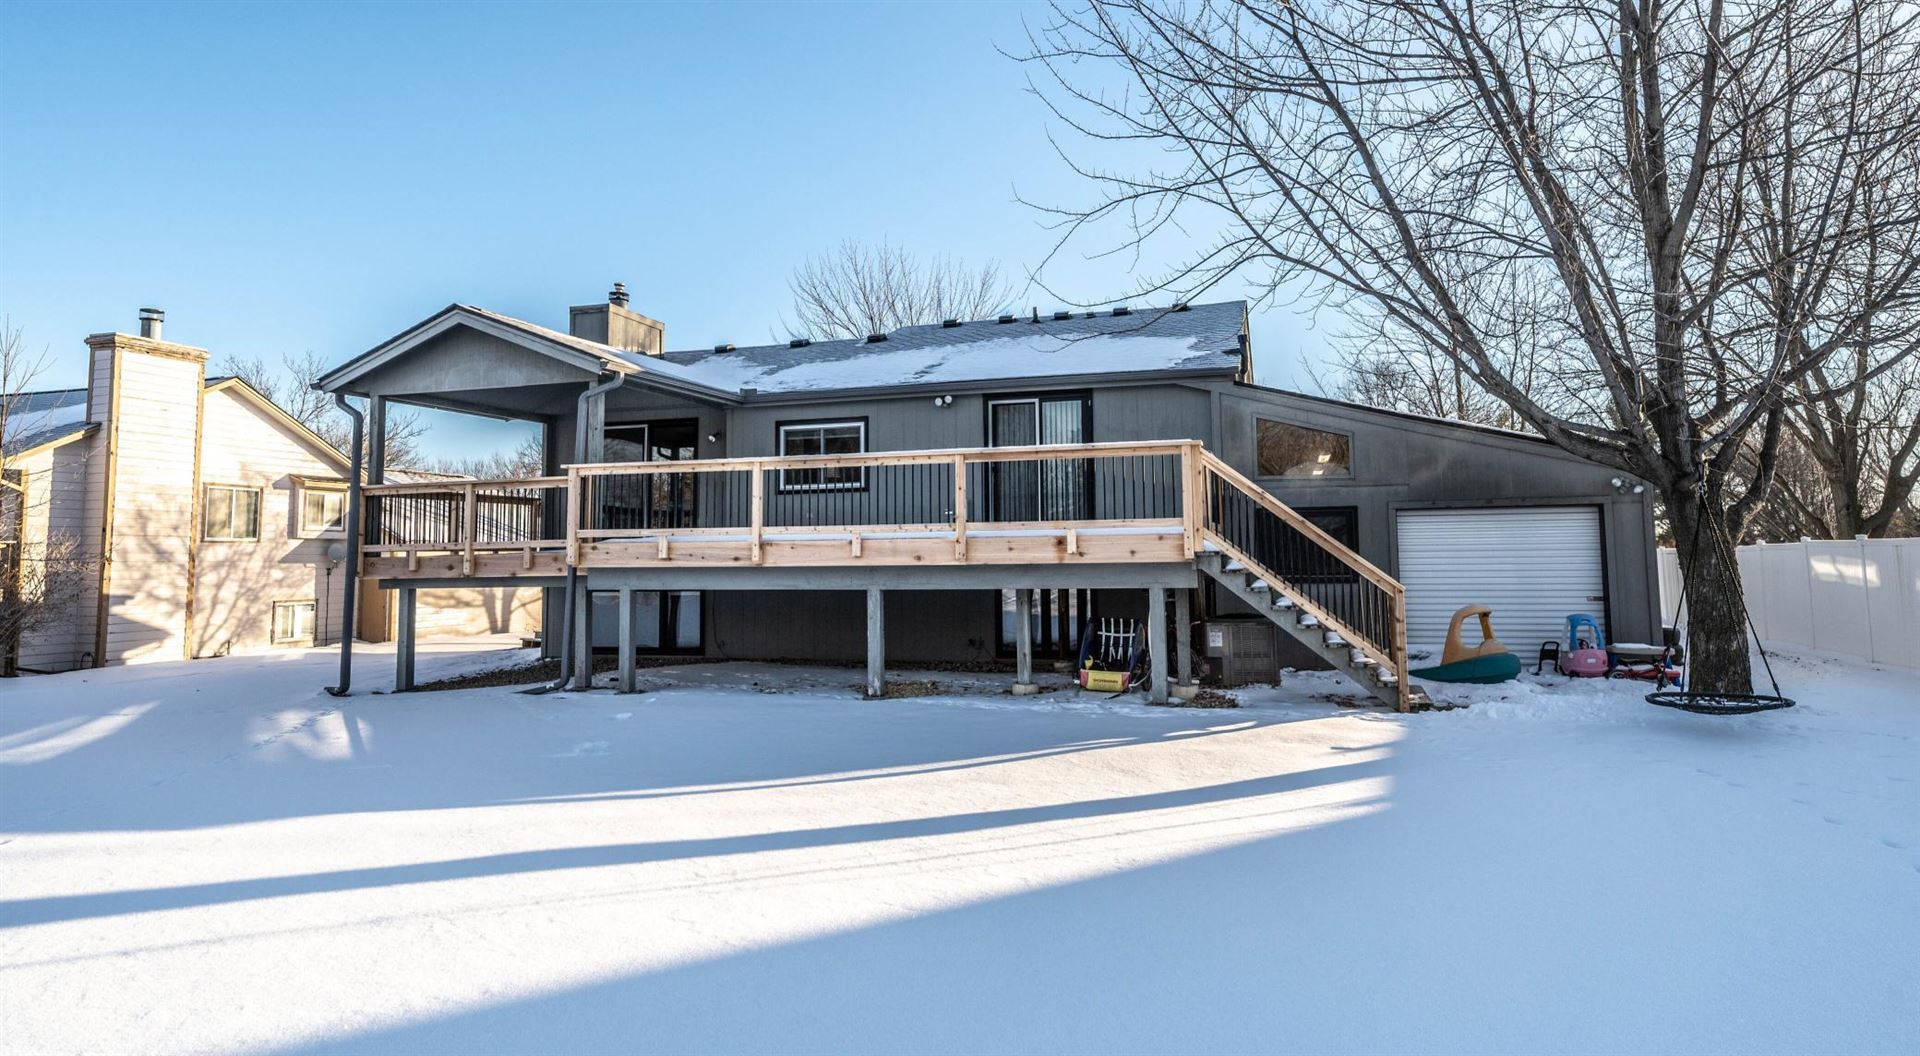 Photo of 17055 Gannon Way W, Lakeville, MN 55068 (MLS # 5698645)